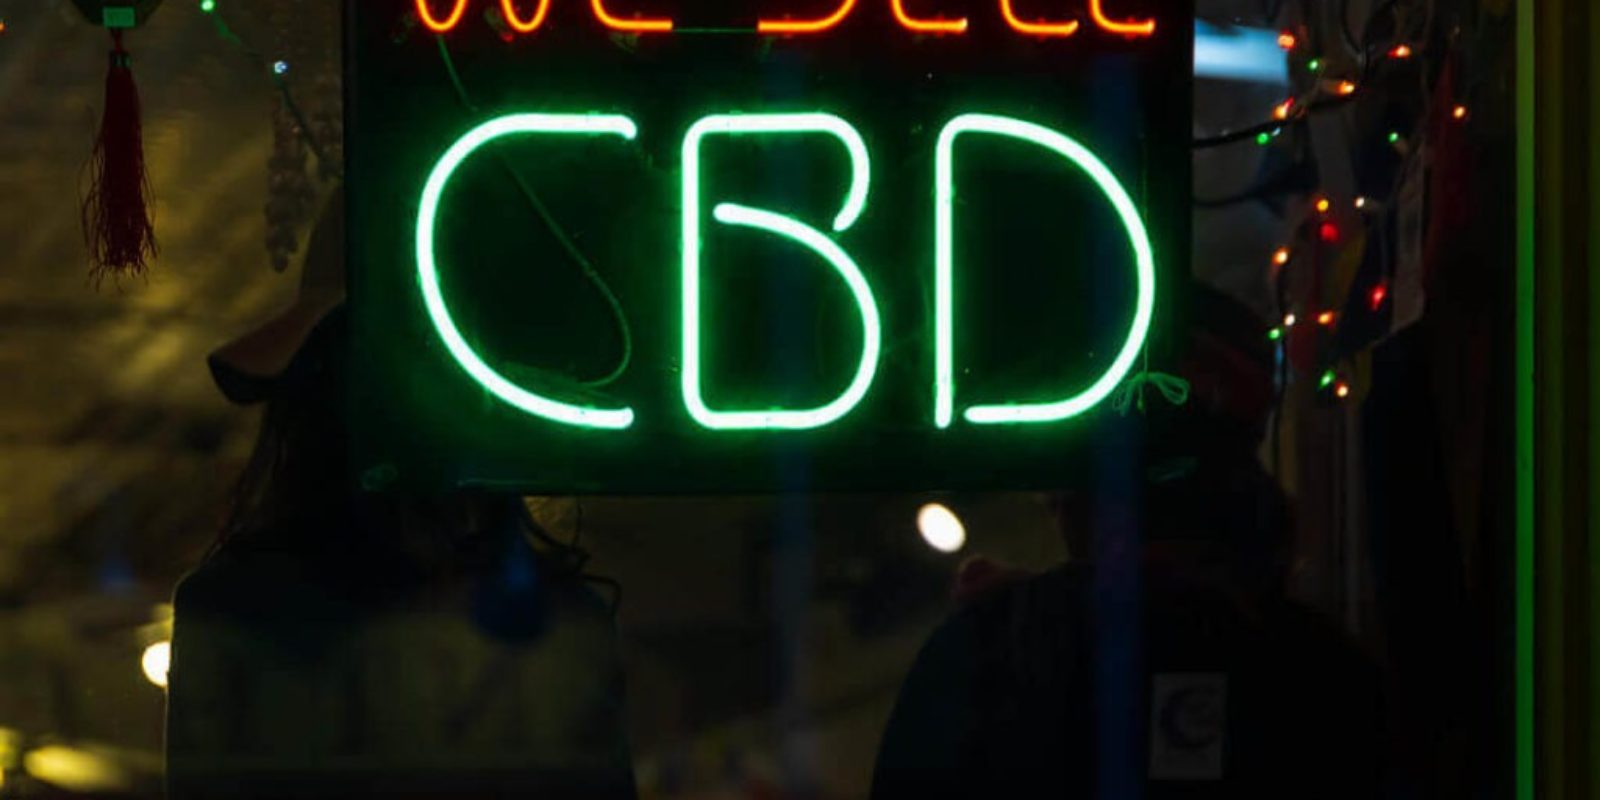 """We sell CBD"" neon sign in the window of a CBD Franchise"